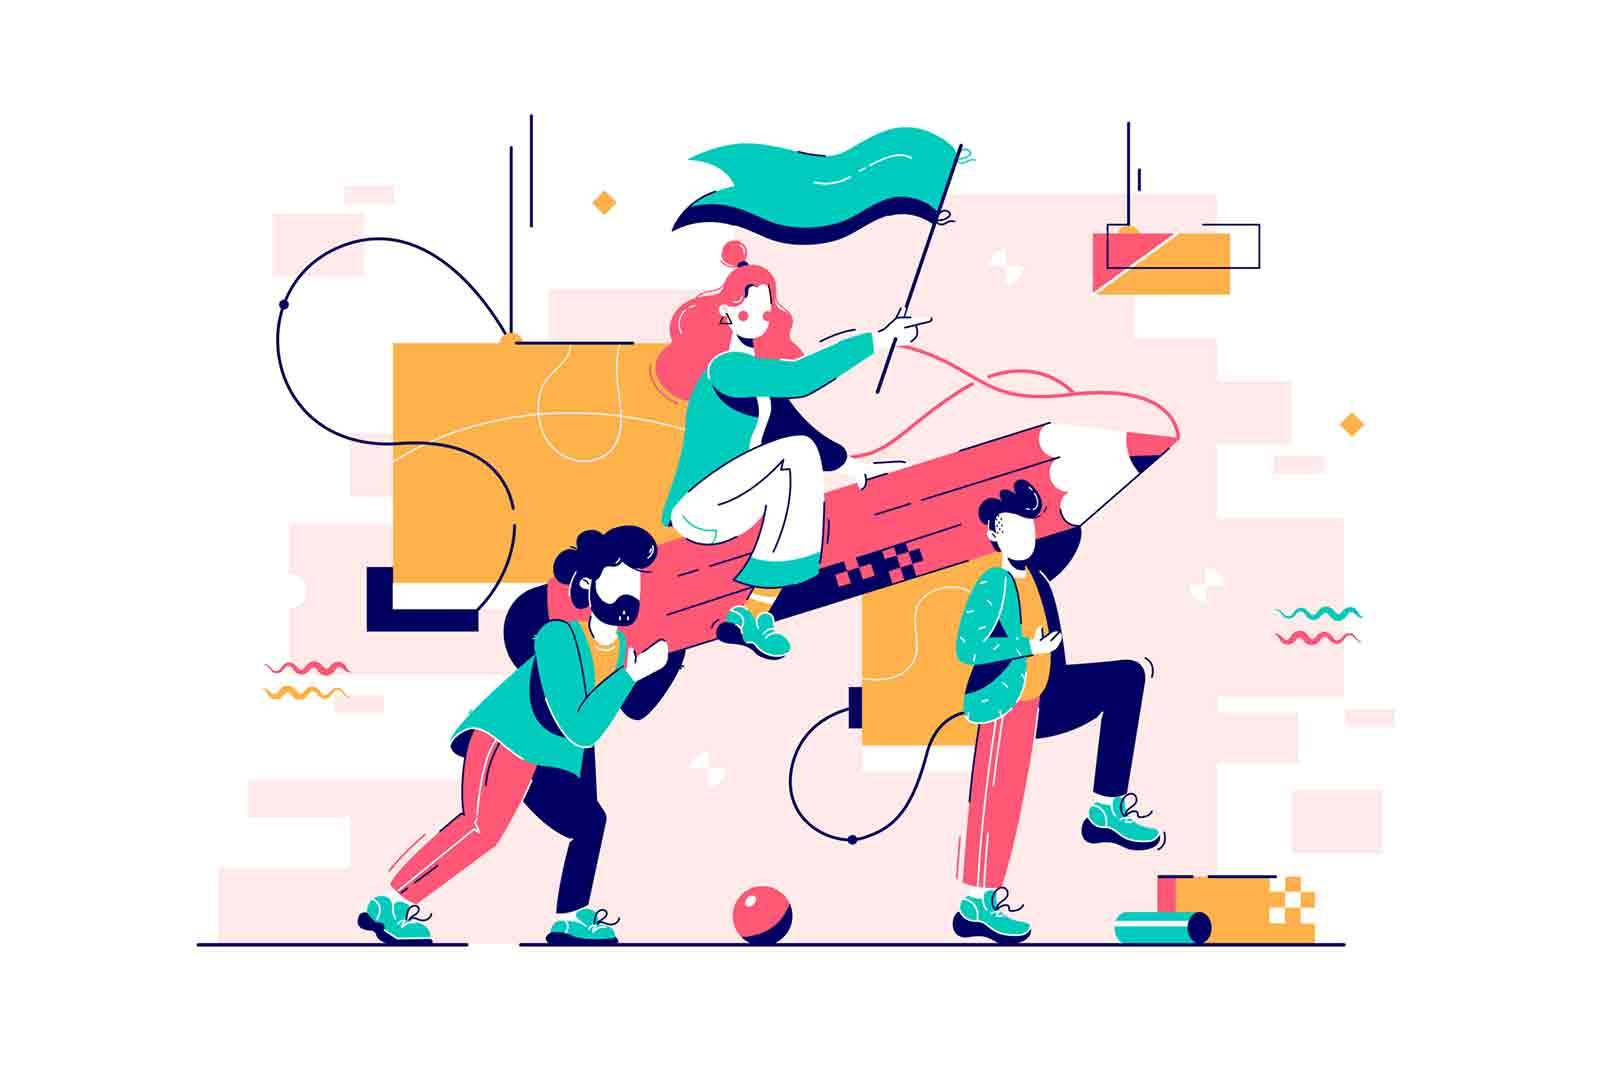 Men carry woman on big pencil, teamwork concept. Flat vector illustration.